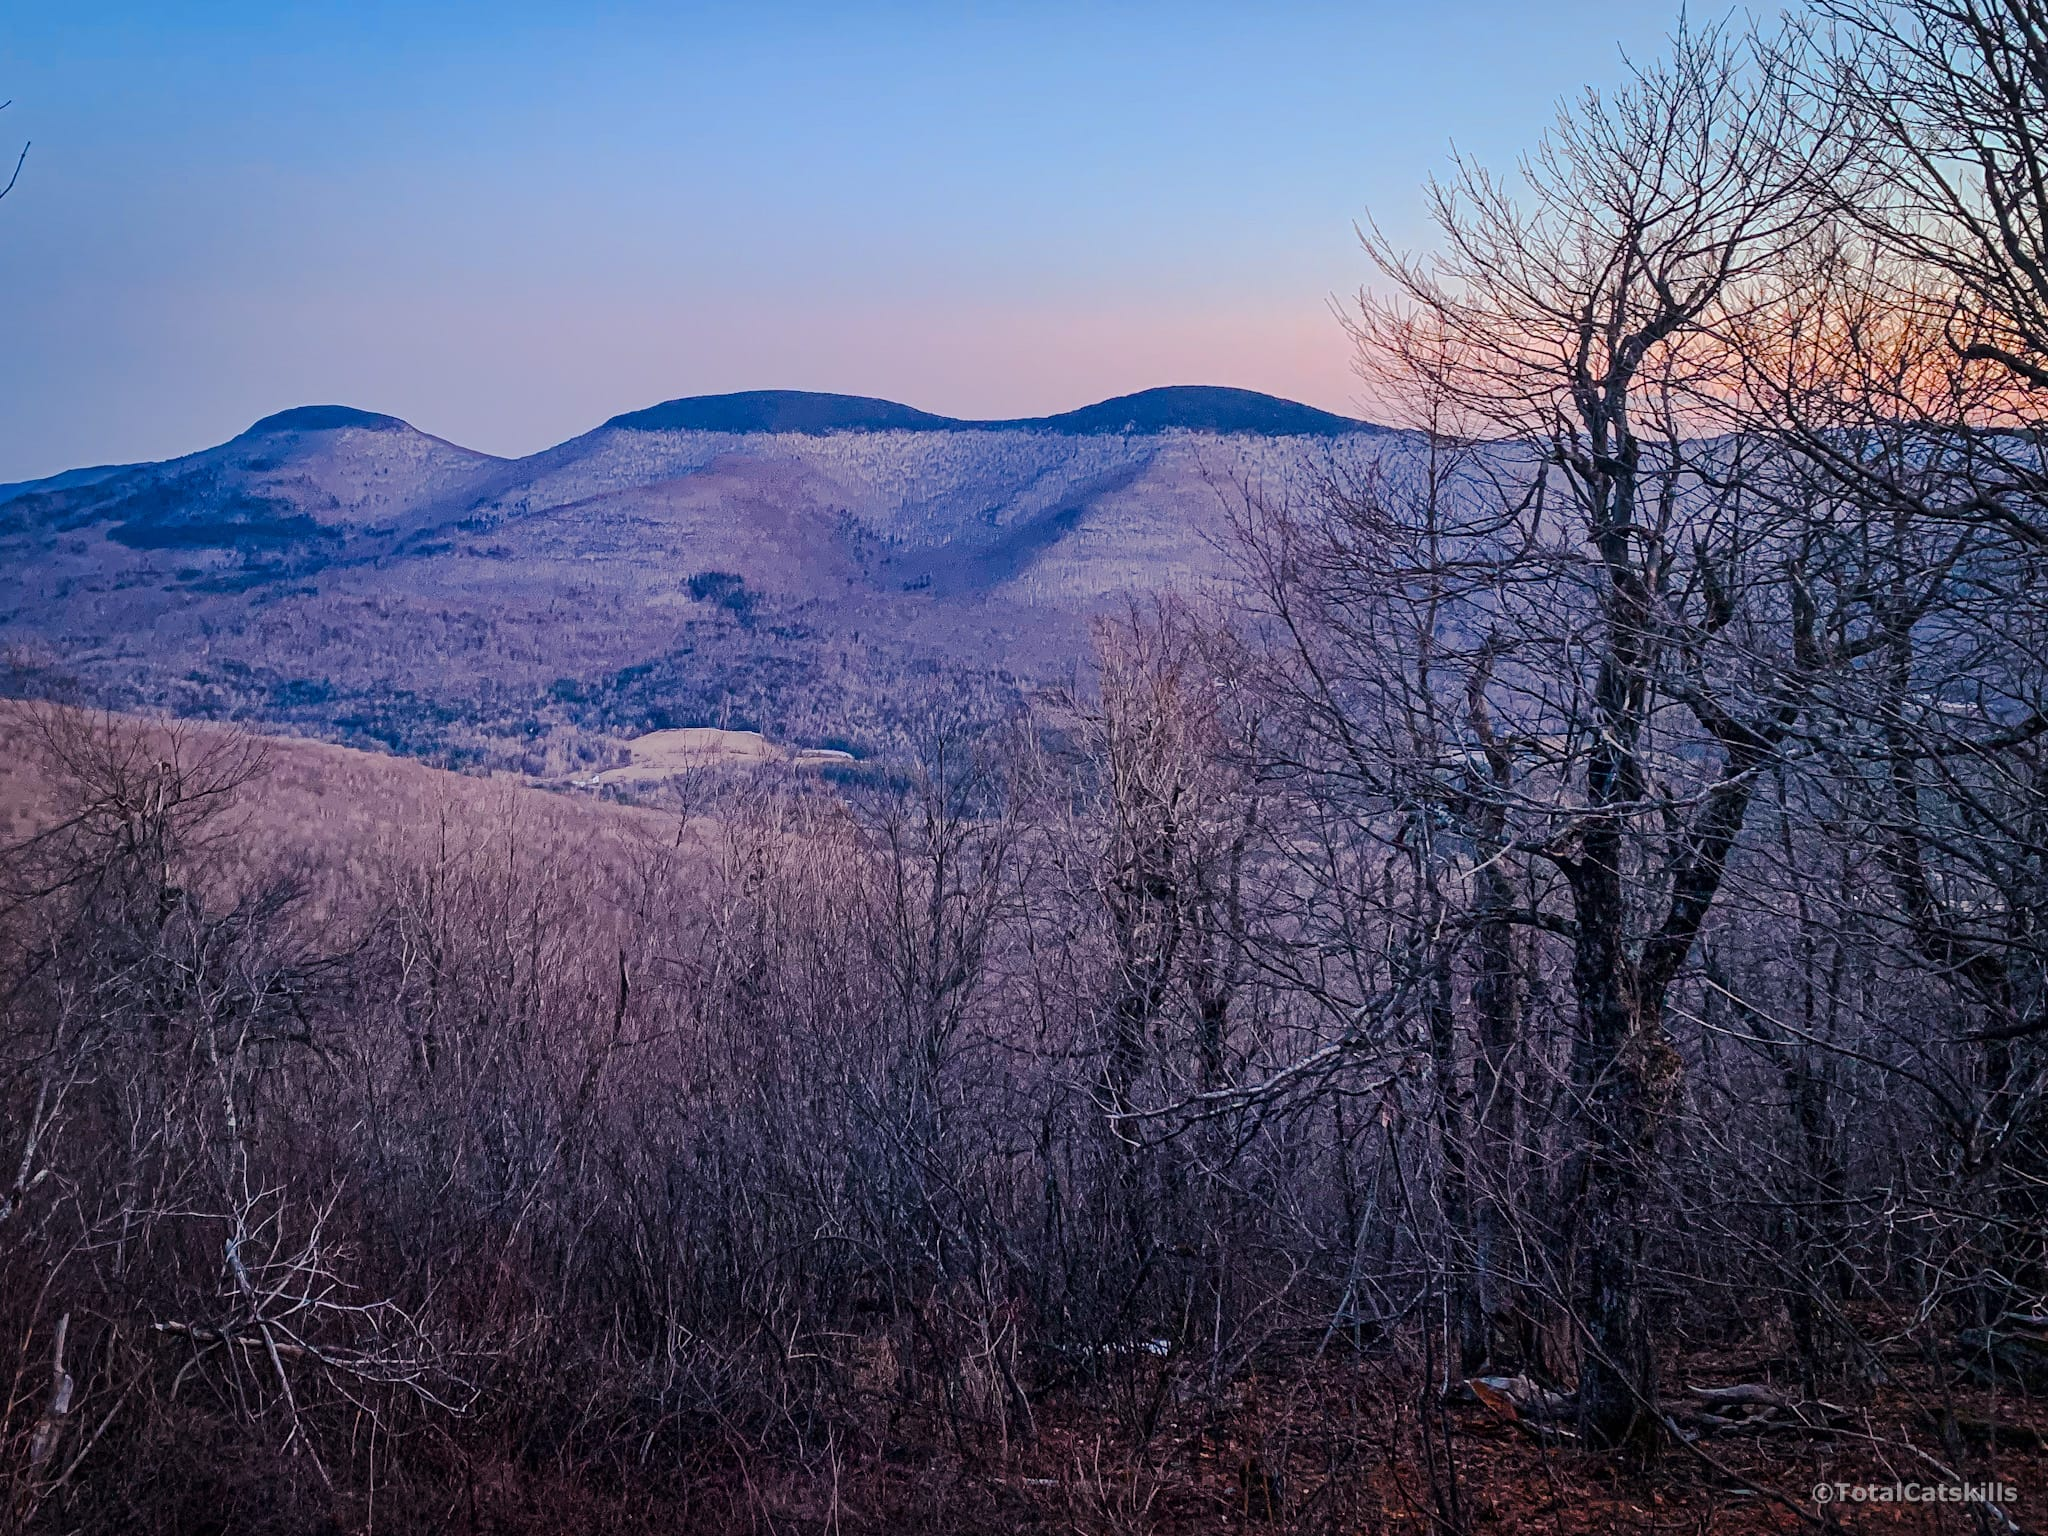 catskill mountains in distance